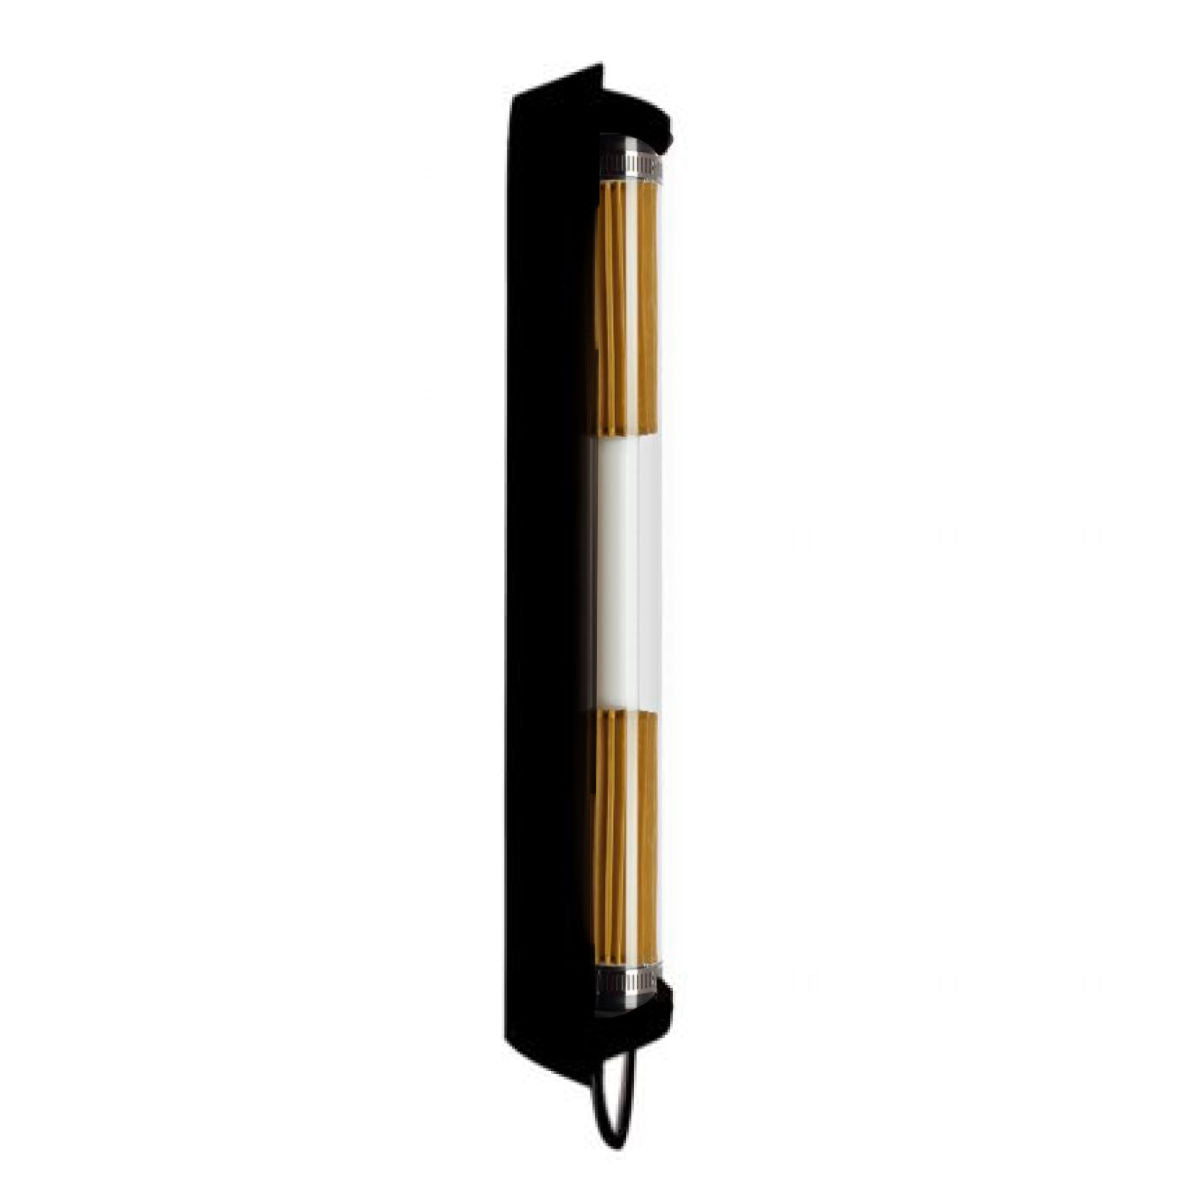 DCW In The Tube 360° Flap wall lamp, black - gold mesh